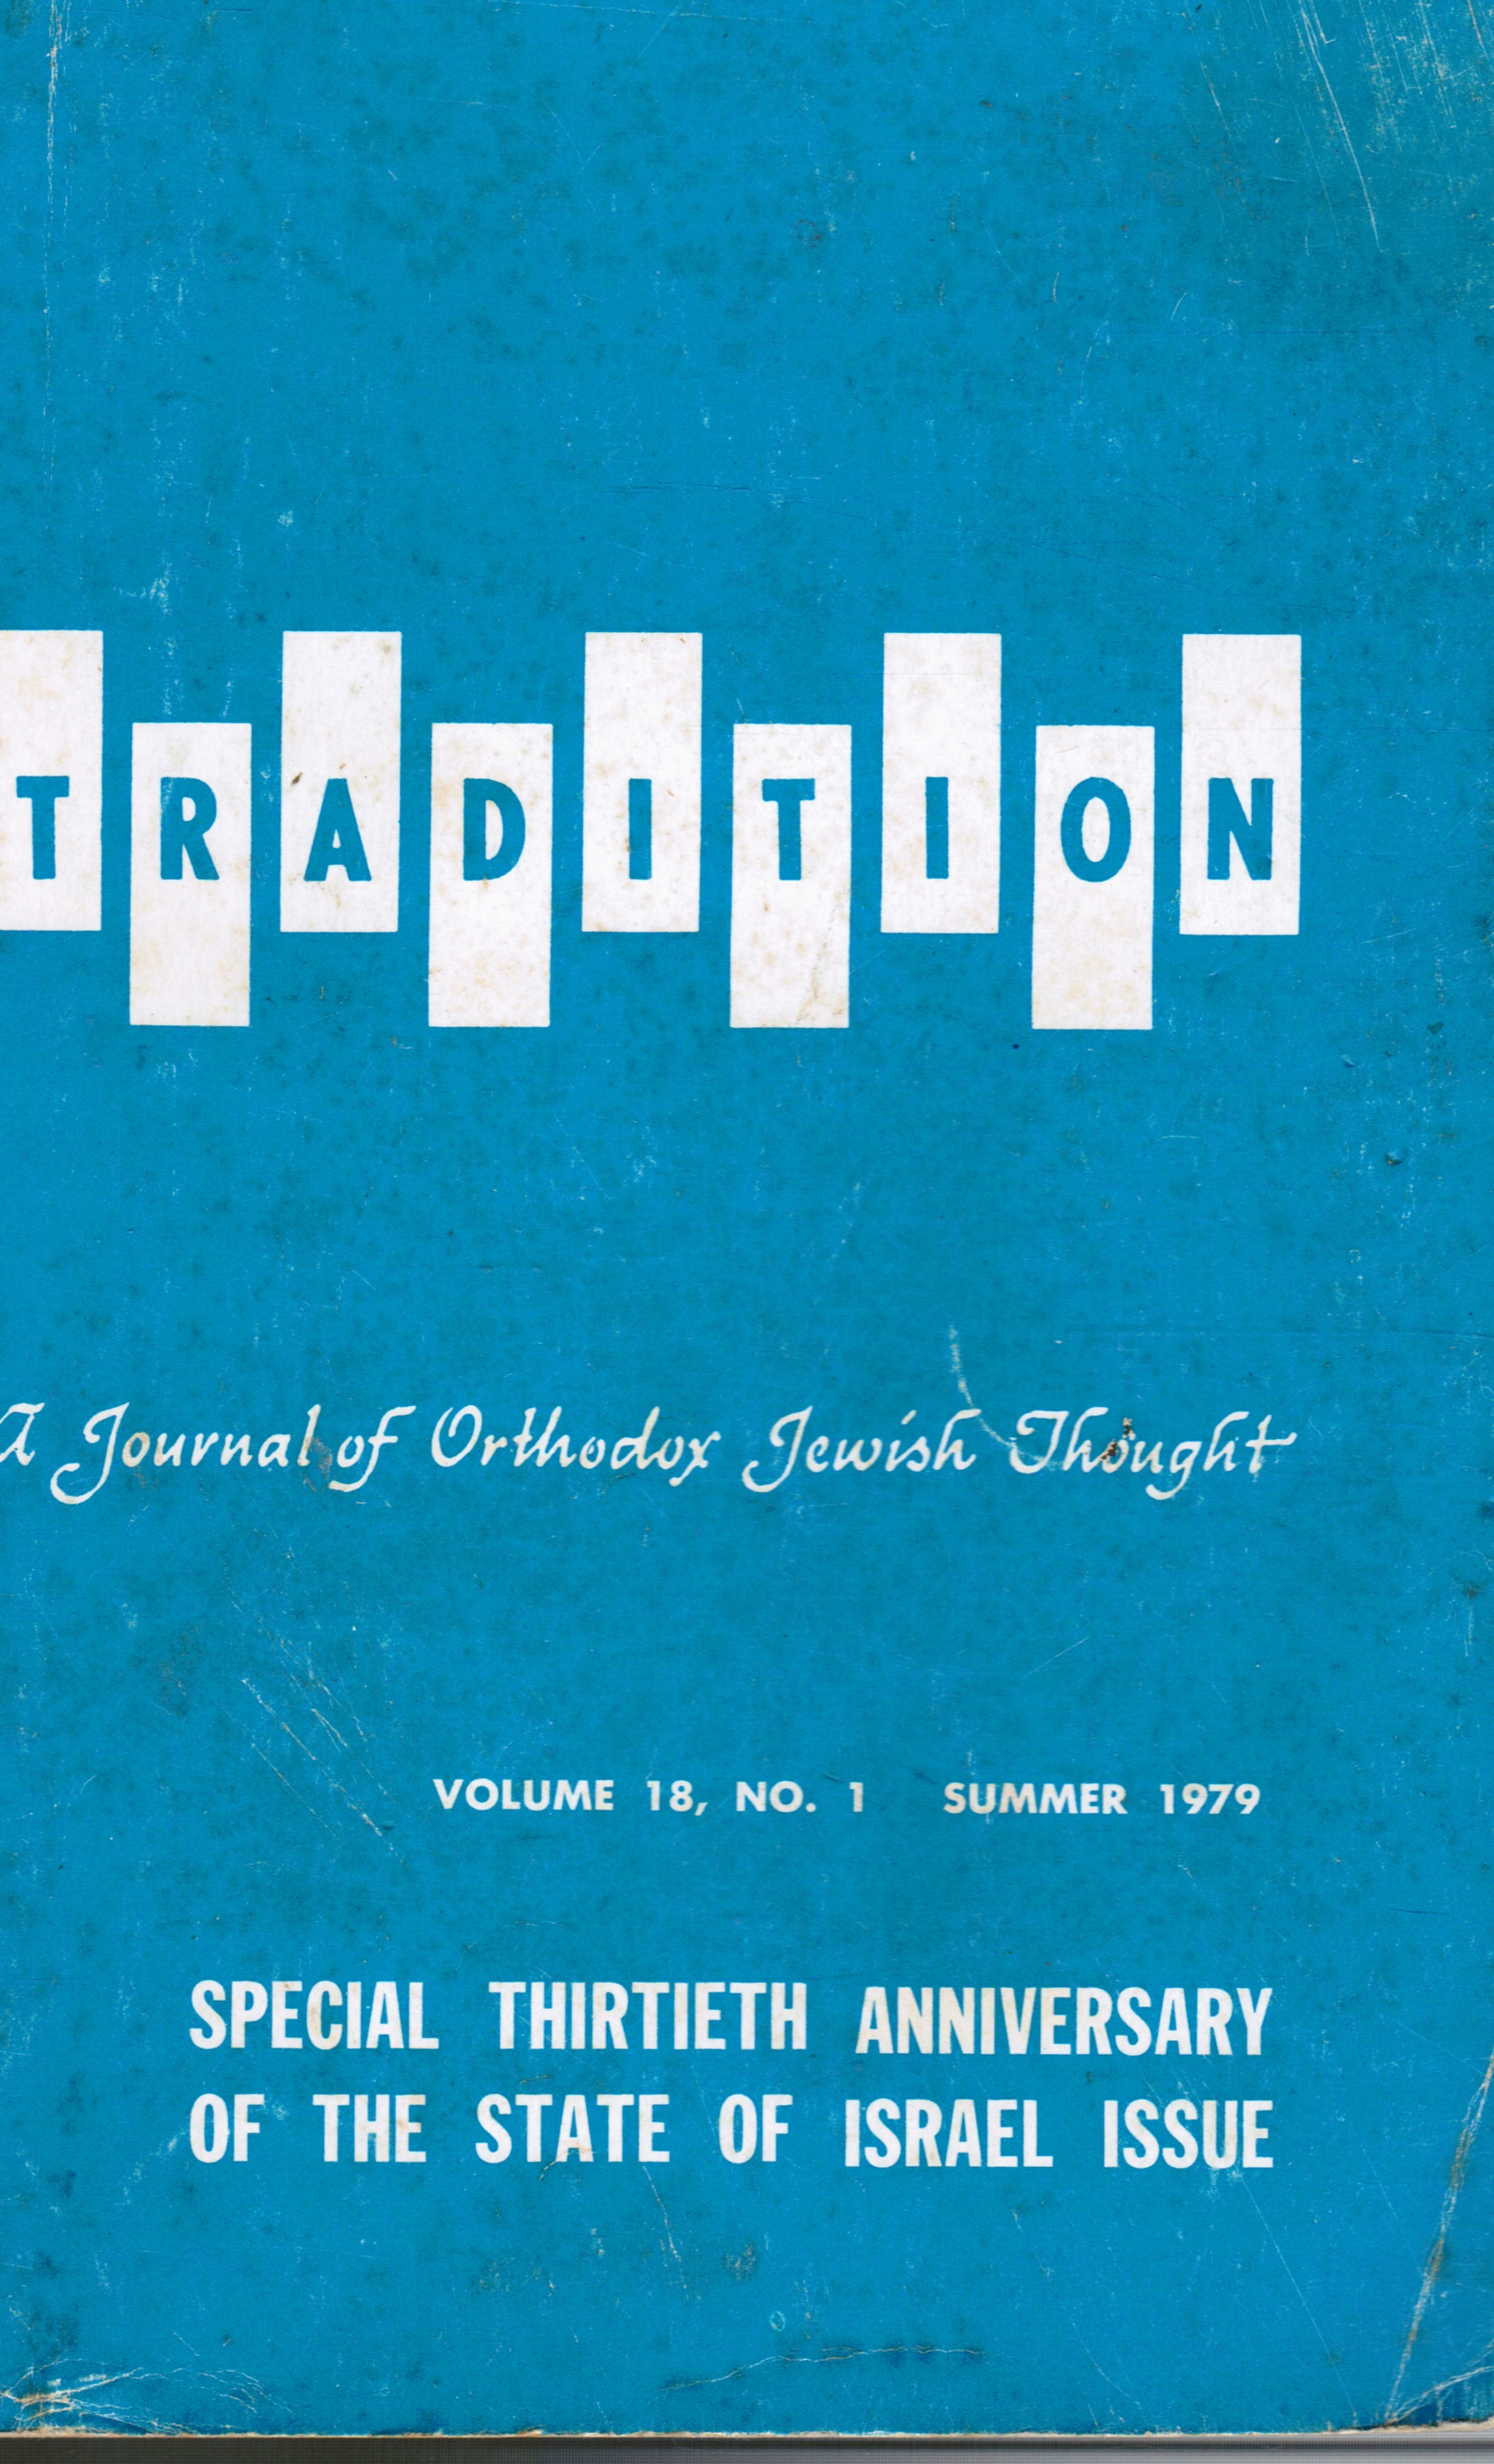 Image for Tradition: Volume 18, No. 1, Summer 1979 Special Thirtieth Anniversary of the State of Israel Guide